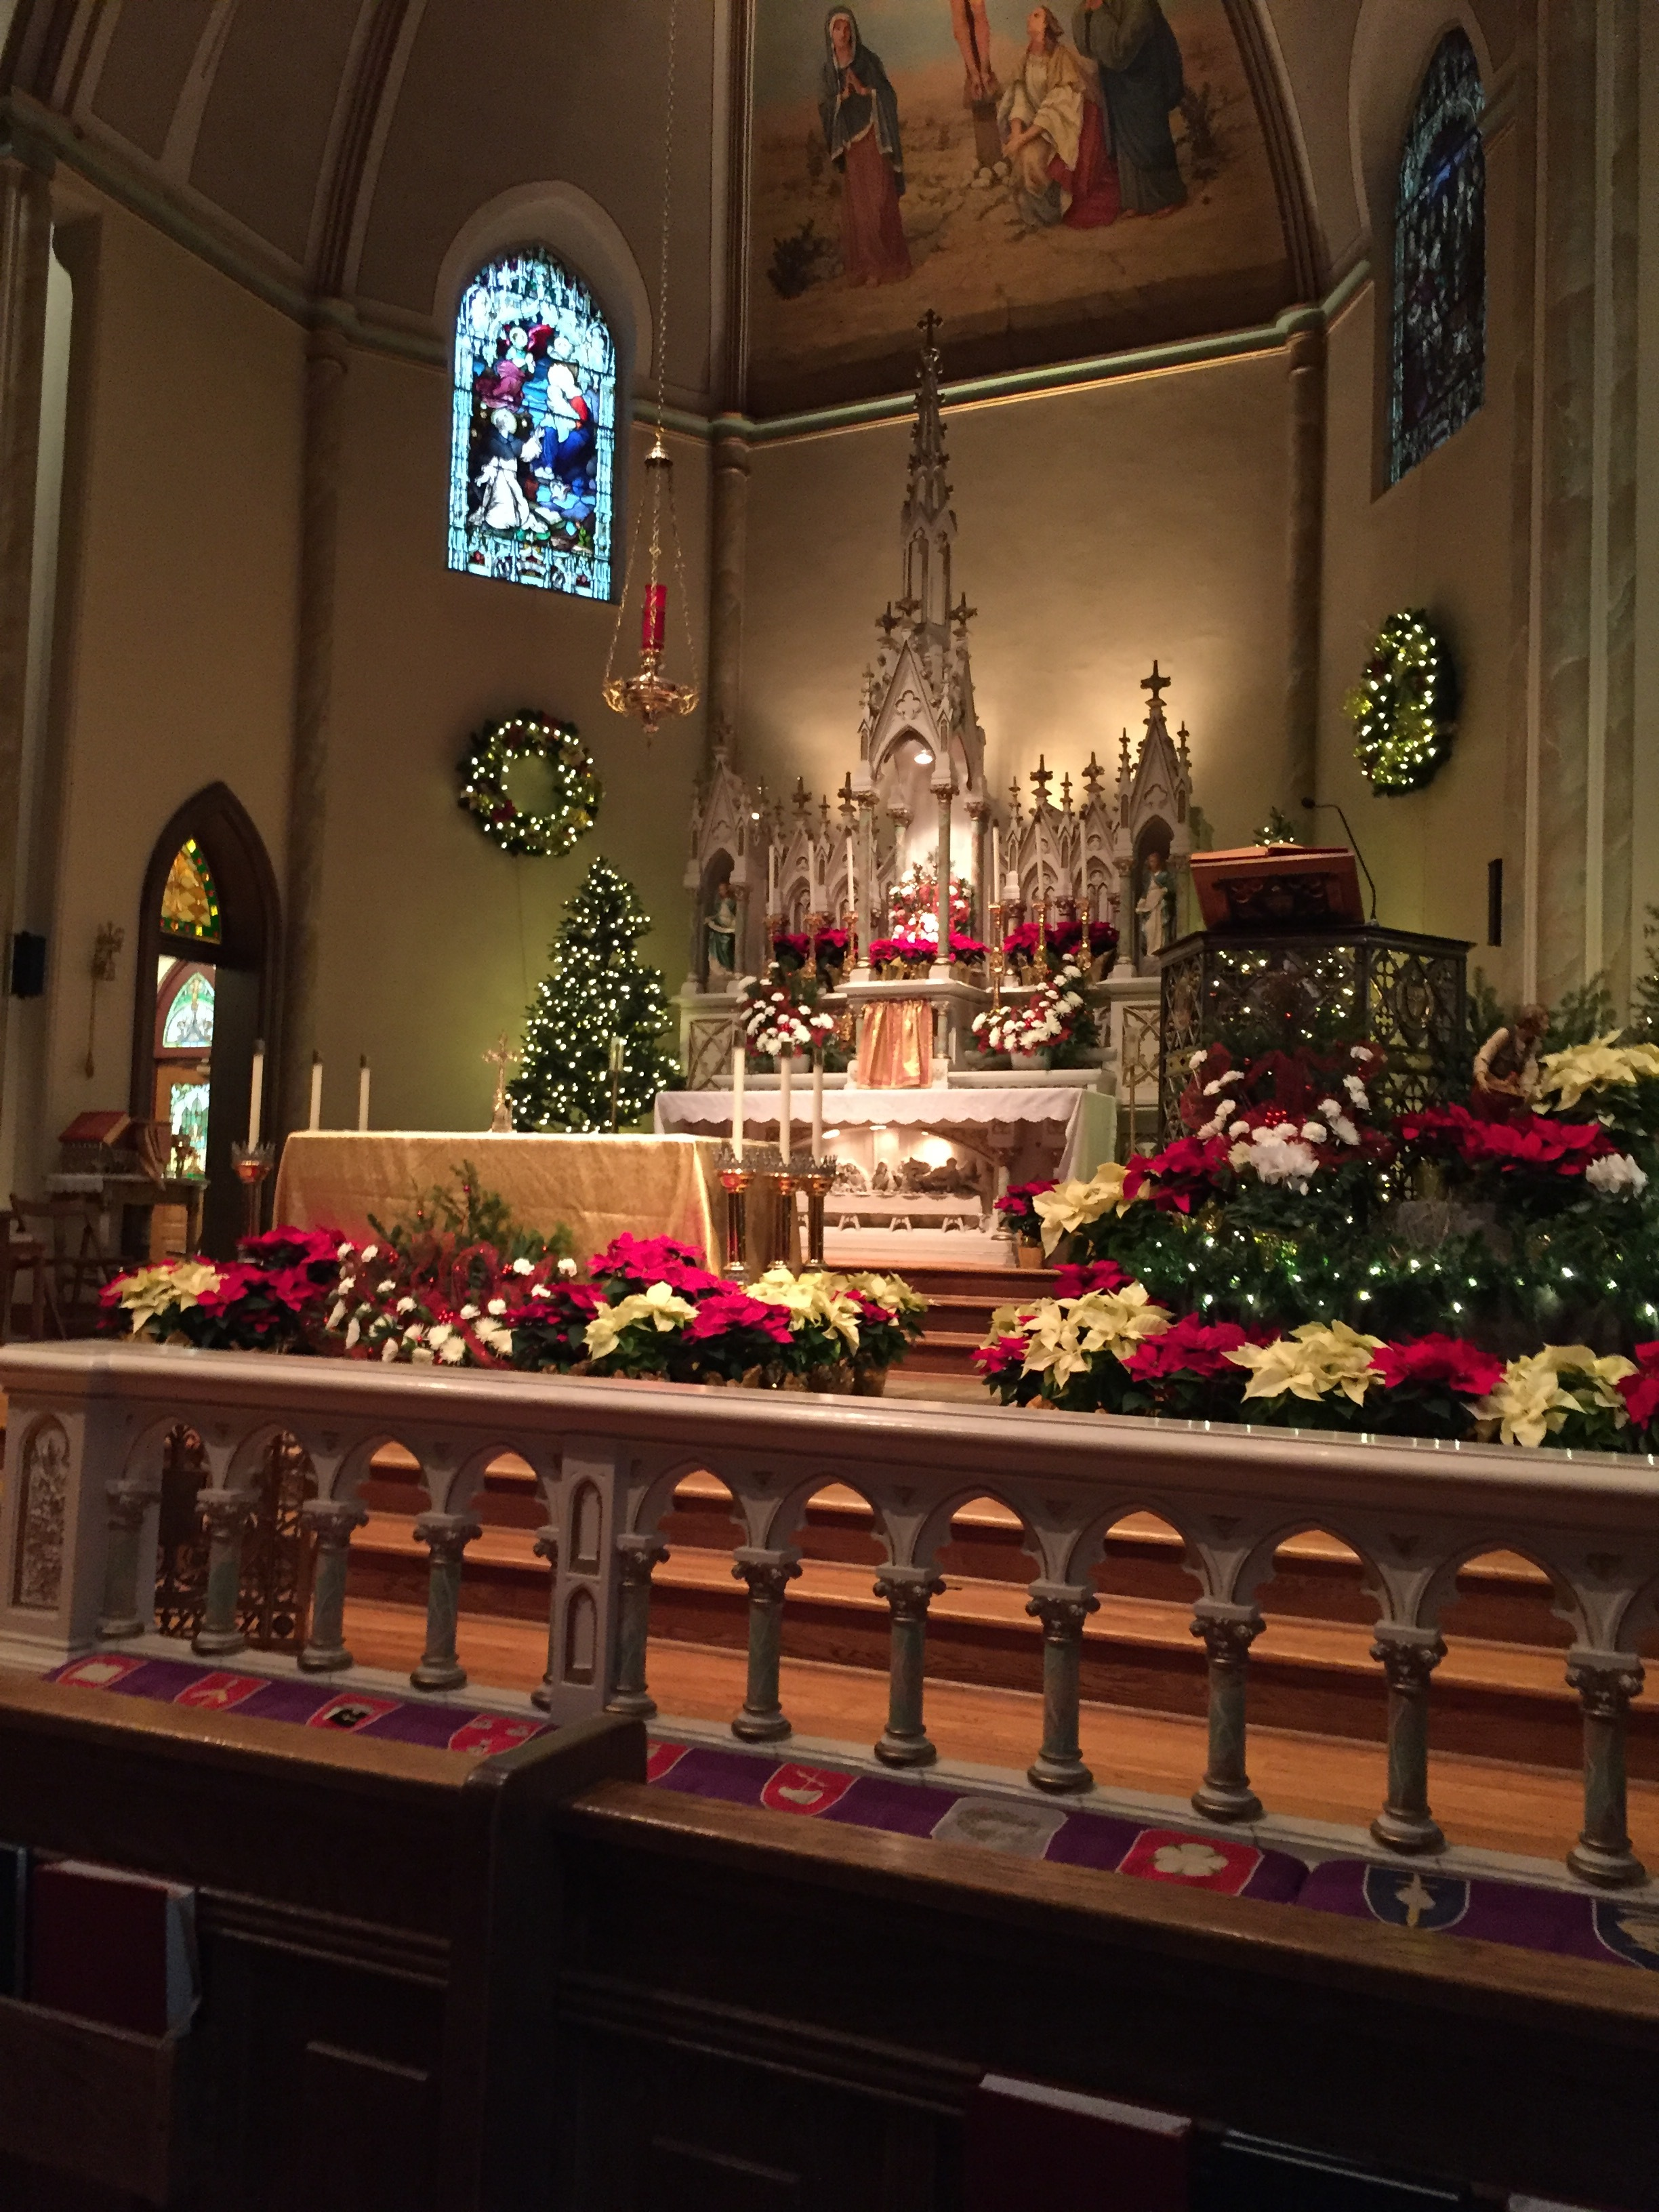 The altar, and yes, we USE those communion rails! The kneeler pads were embroidered by members of the altar guild, I believe. The stained glass window you can see is of St. Dominic receiving the rosary from Our Lady.